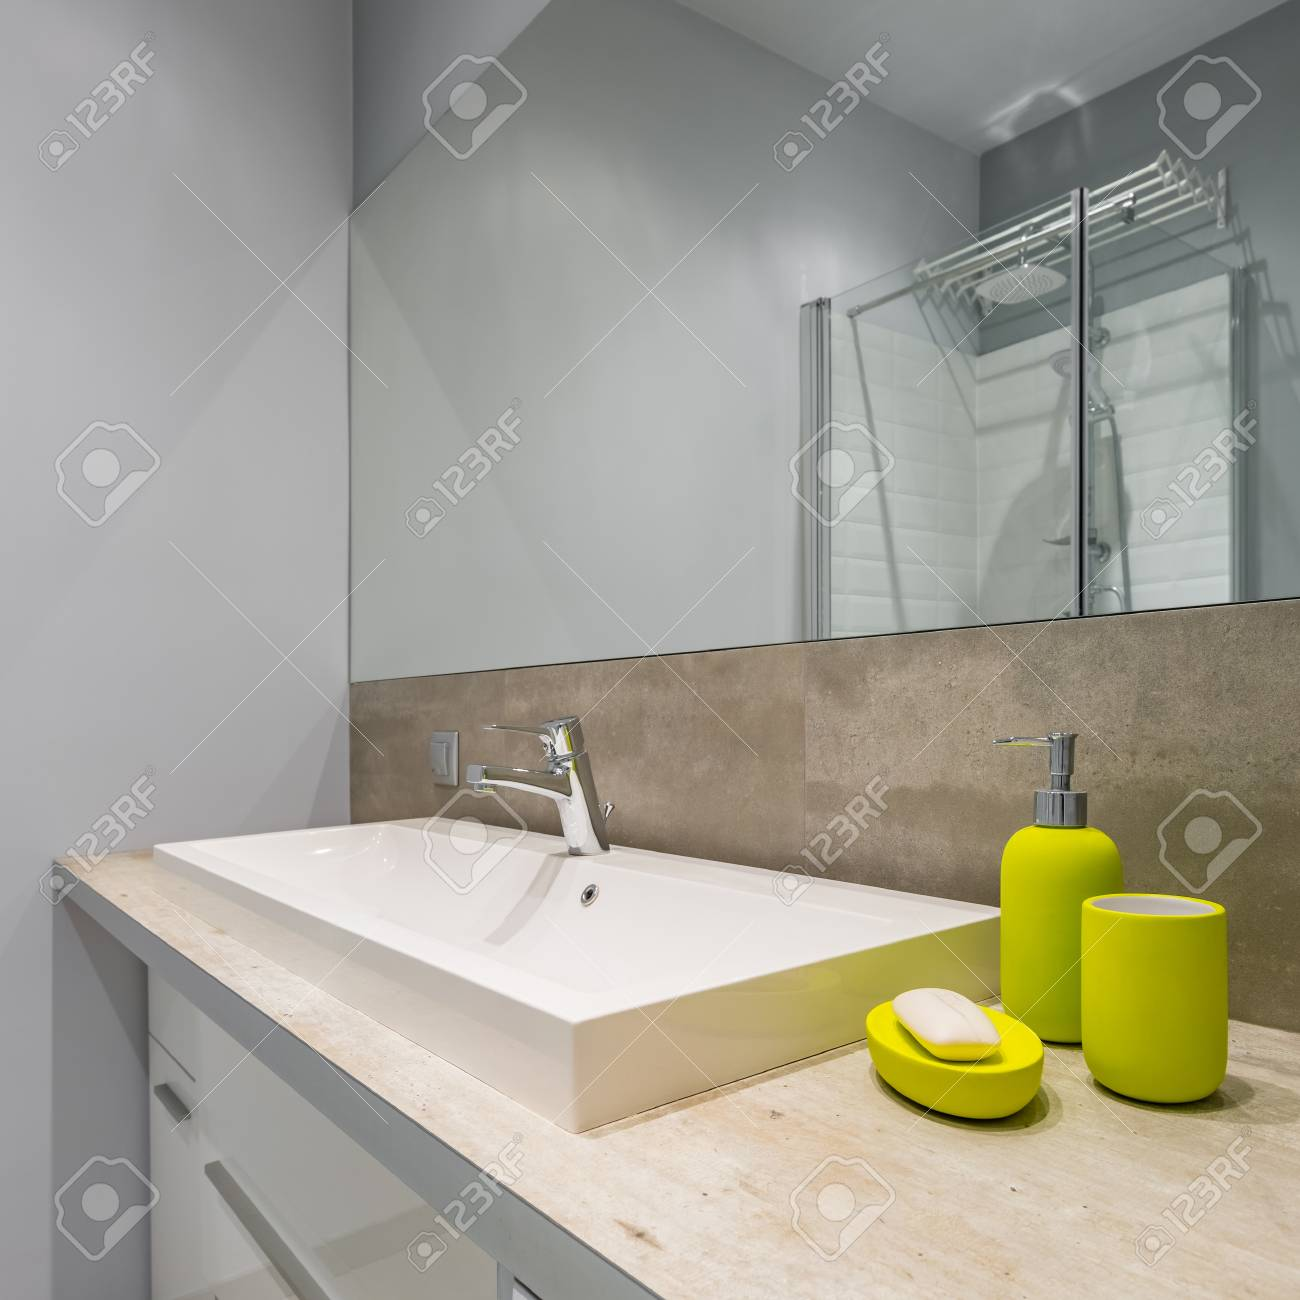 Modern Bathroom With Countertop Basin Big Mirror And Green Accessories Stock Photo Picture And Royalty Free Image Image 95593284